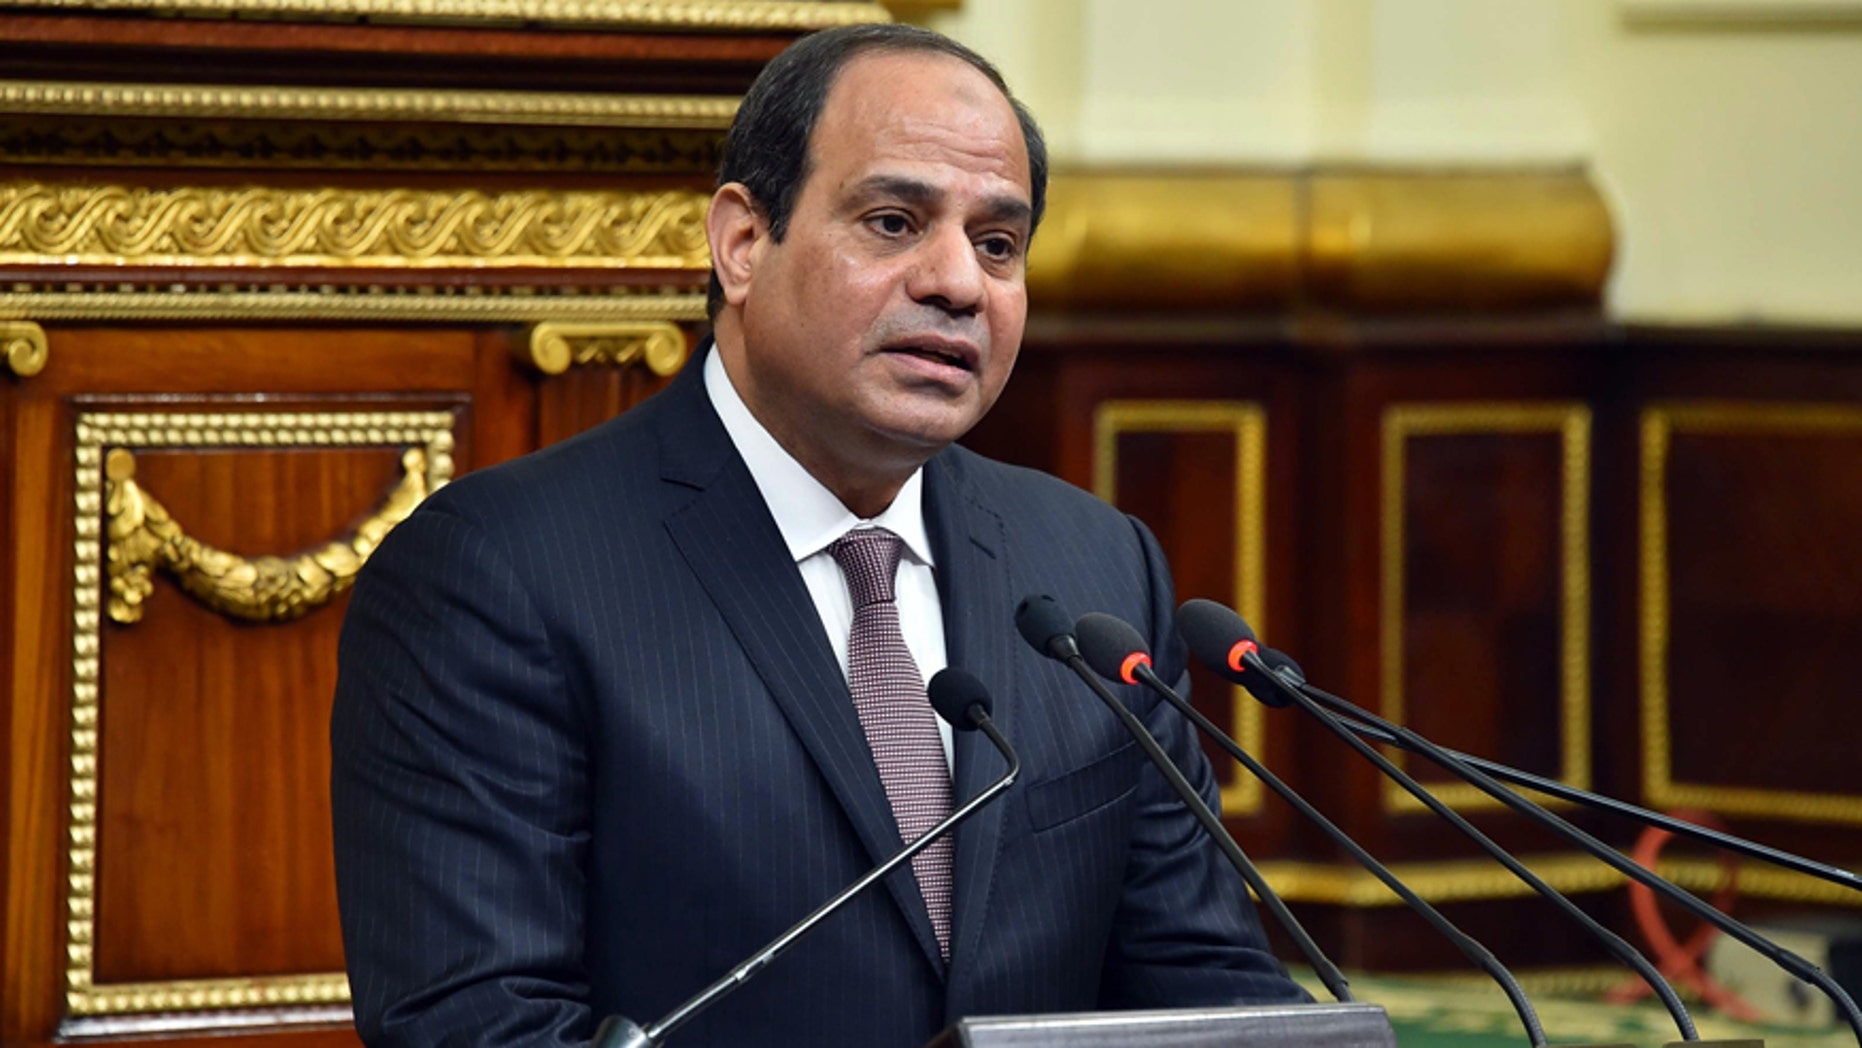 Feb. 13, 2016: In this photo provided by Egypt's state news agency MENA, Egyptian President Abdel-Fattah el-Sissi, addresses parliament in Cairo, Egypt.